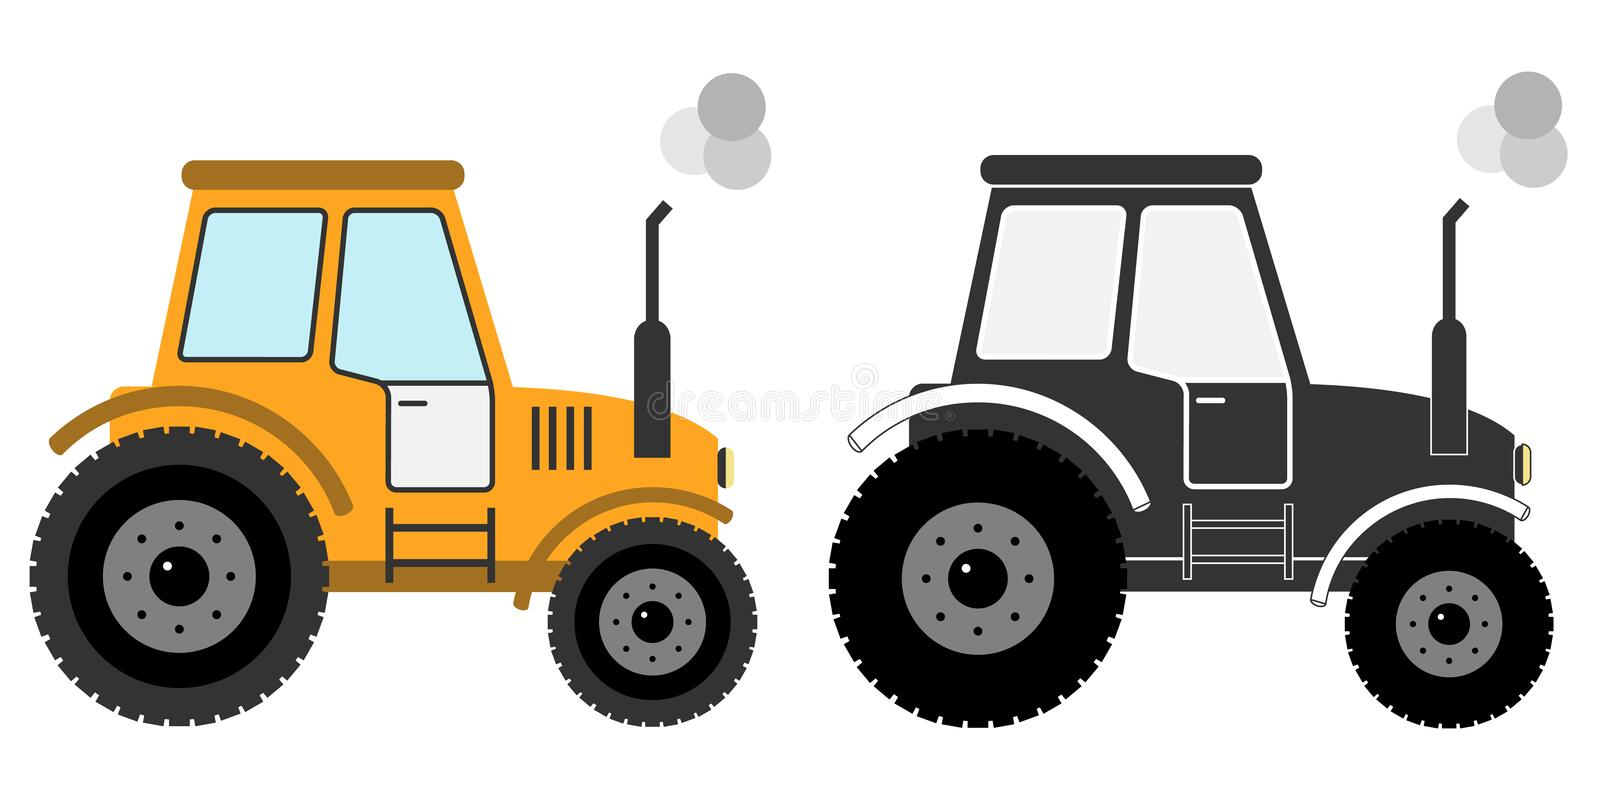 Tractor icon. Flat design, illustration stock illustration